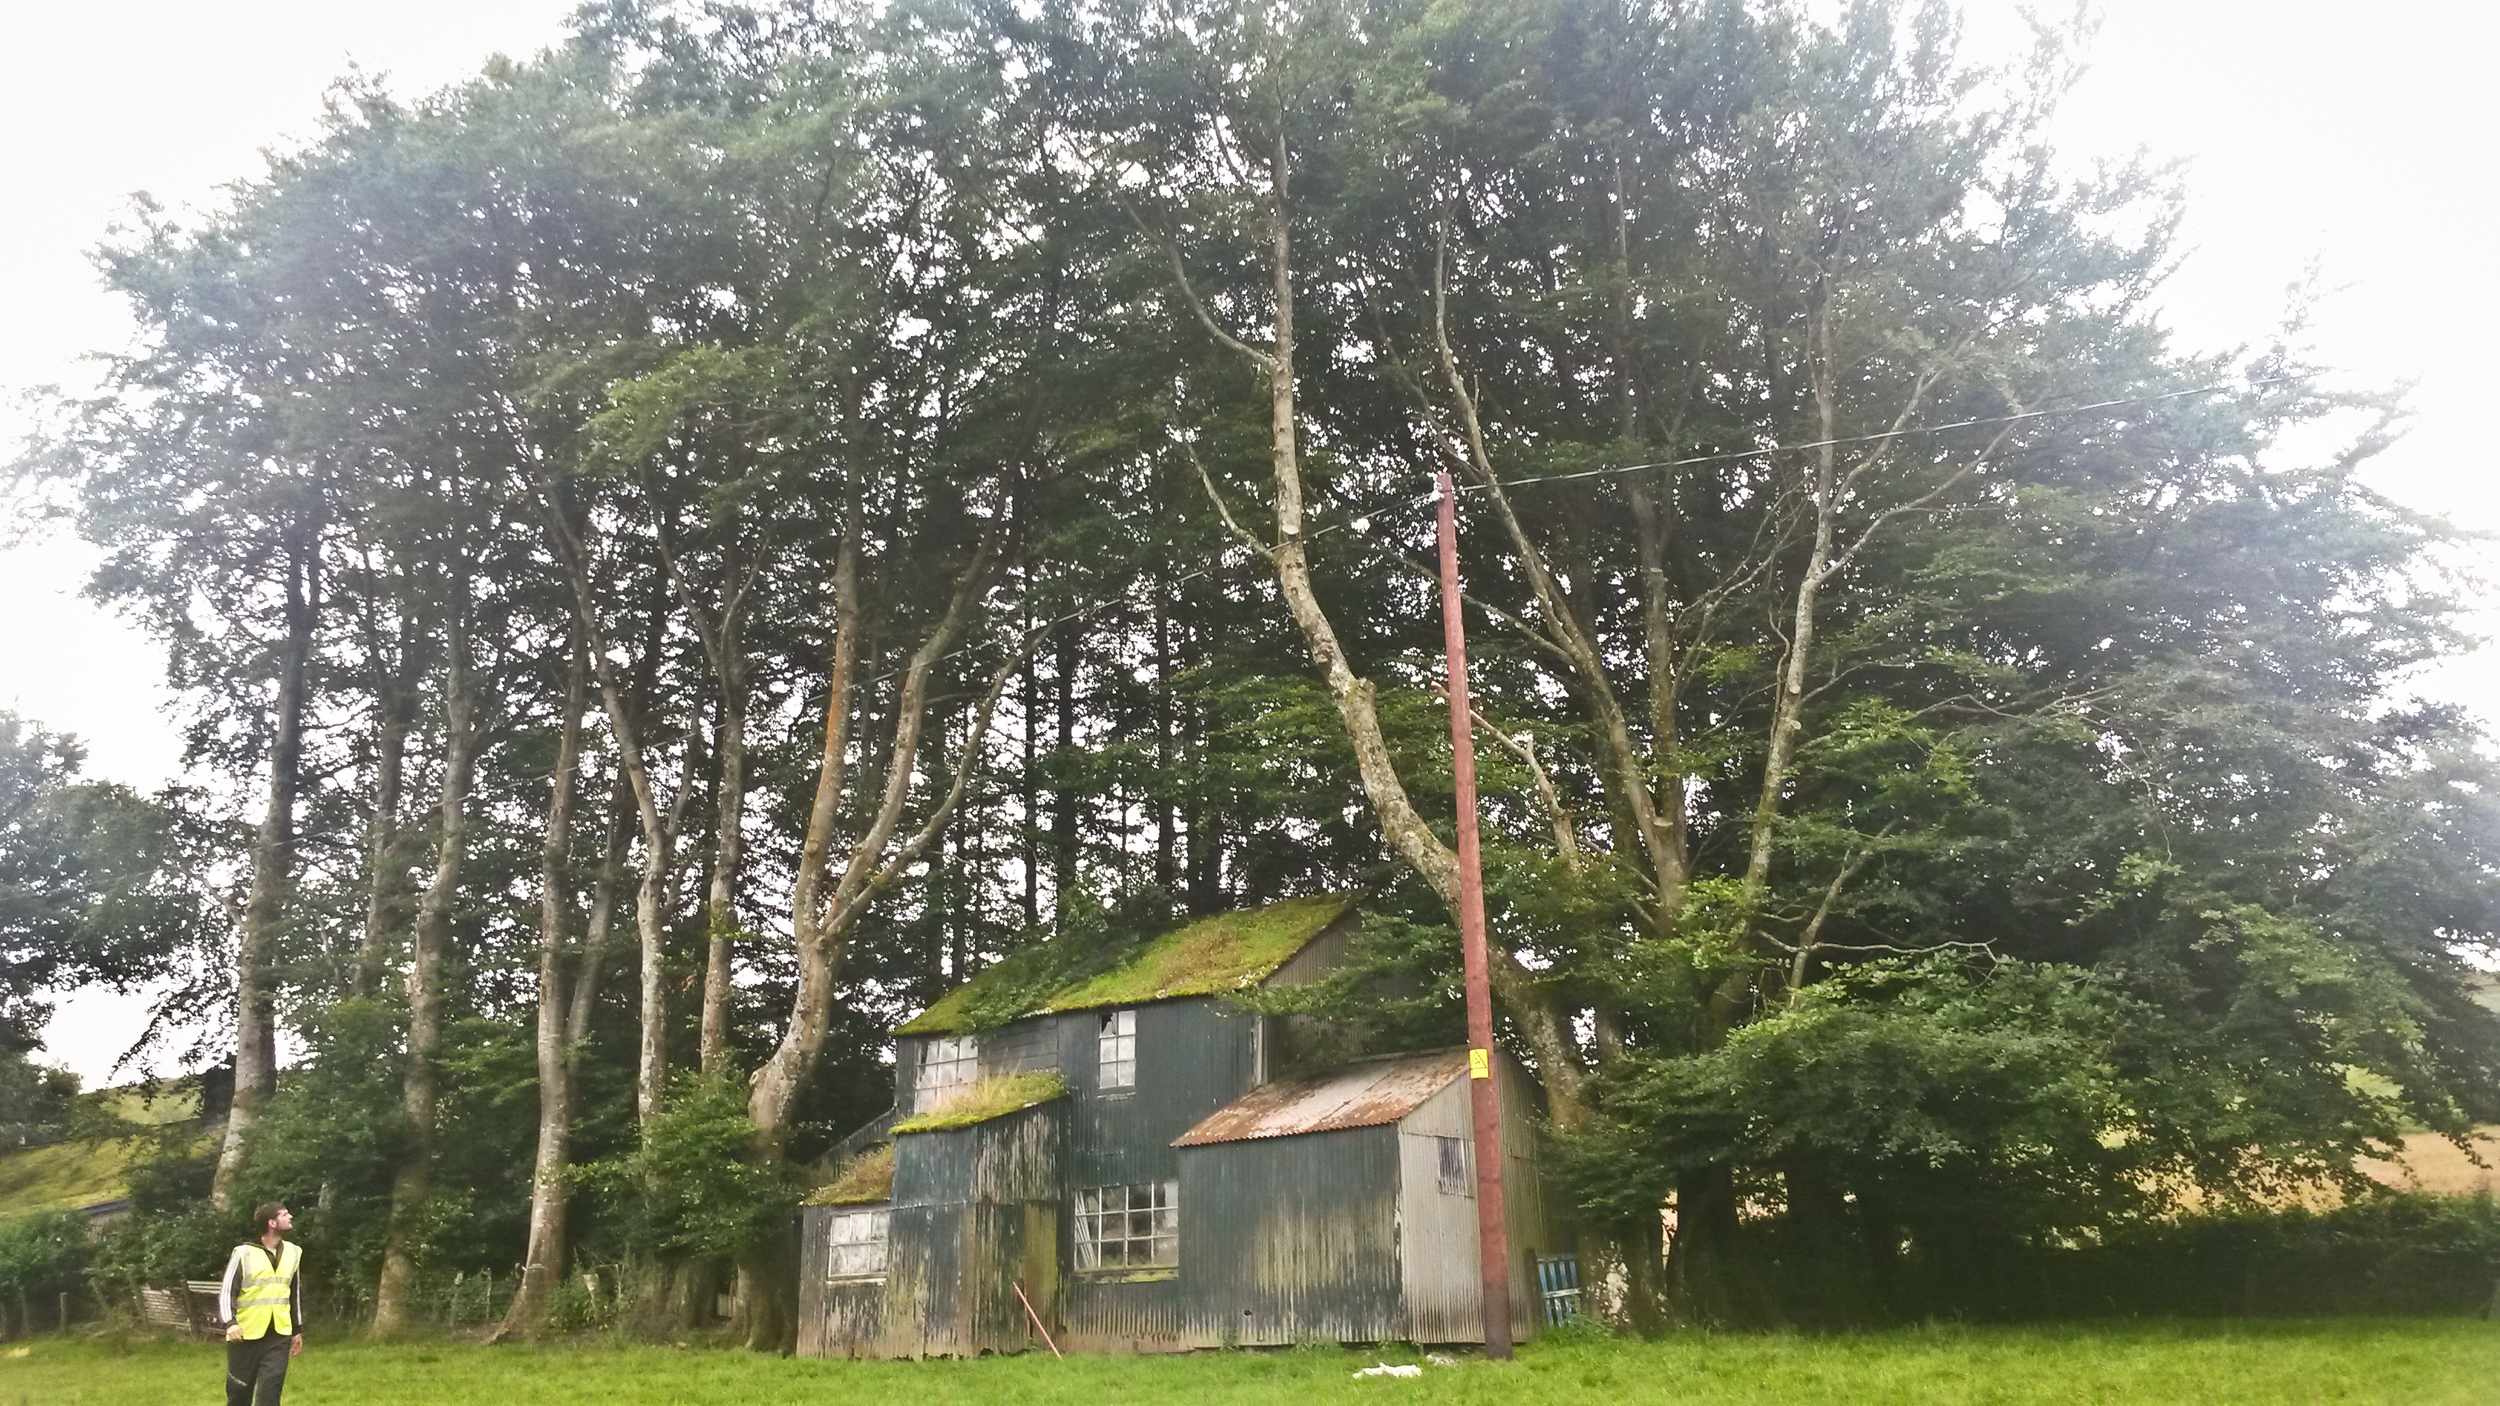 BEFORE: Beginning of day 1, approximately 25 mature trees to be removed to allow for the renovation of this grade 2 listed carpenters workshop